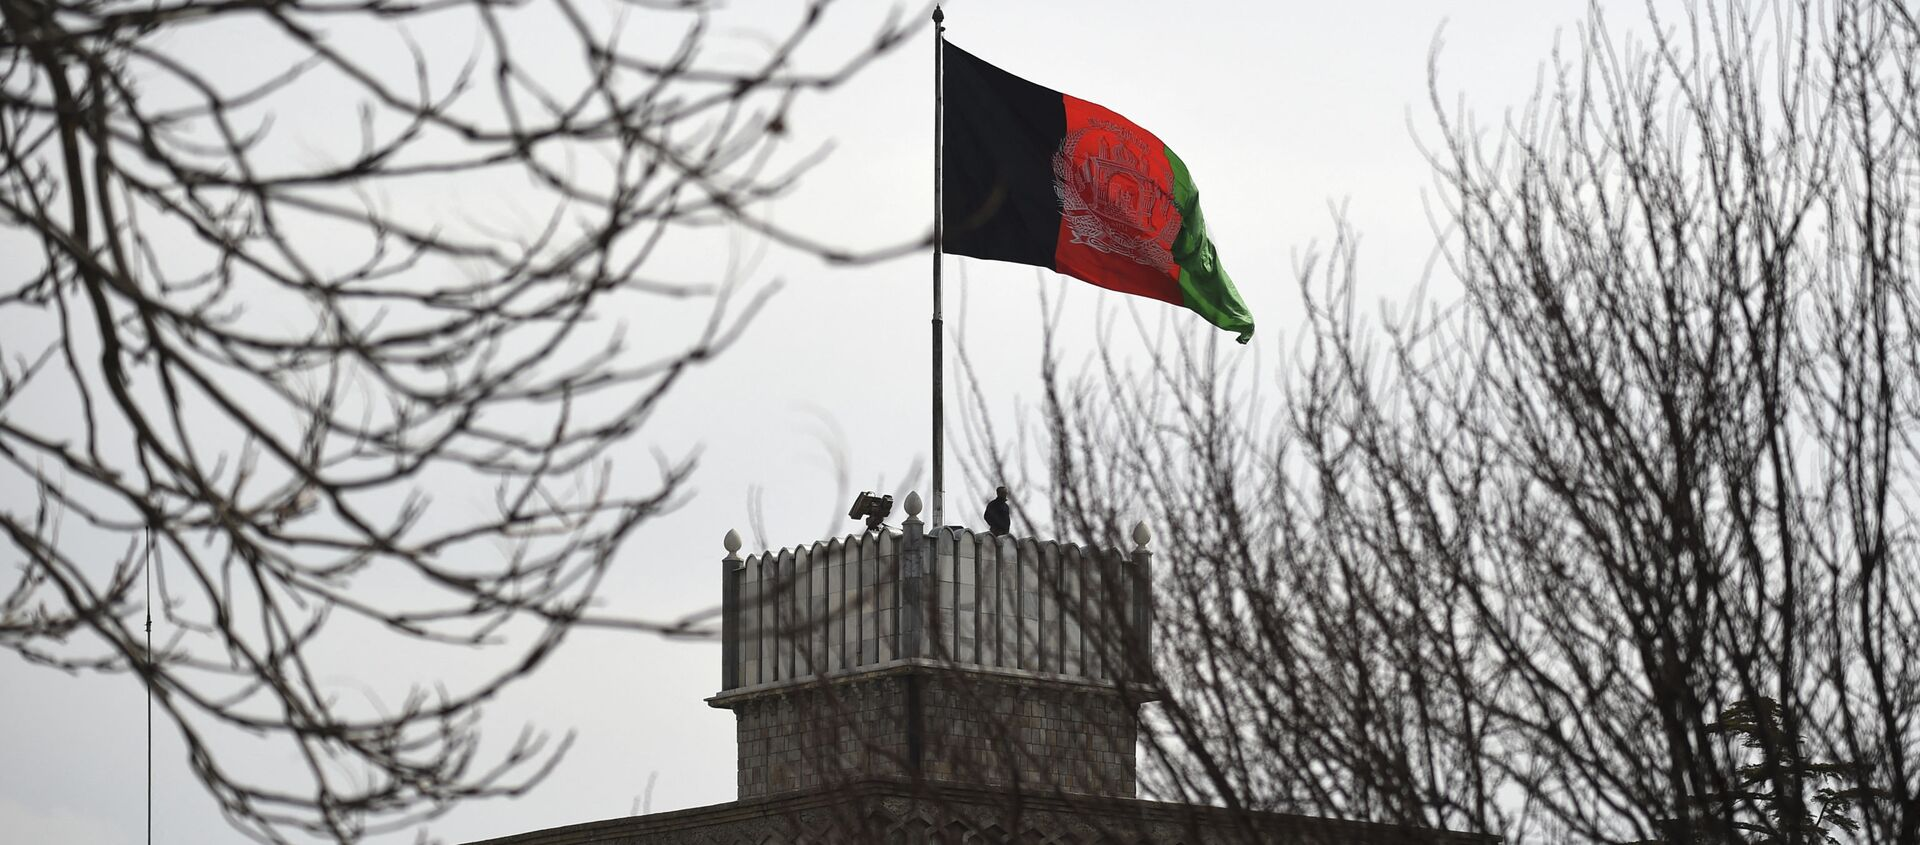 An Afghan security personnel keeps watch on a tower as the Afghan national flag flutters ahead of the start of Afghanistan President Ashraf Ghani's swearing-in inauguration ceremony, at the Presidential Palace in Kabul on March 9, 2020. - Sputnik International, 1920